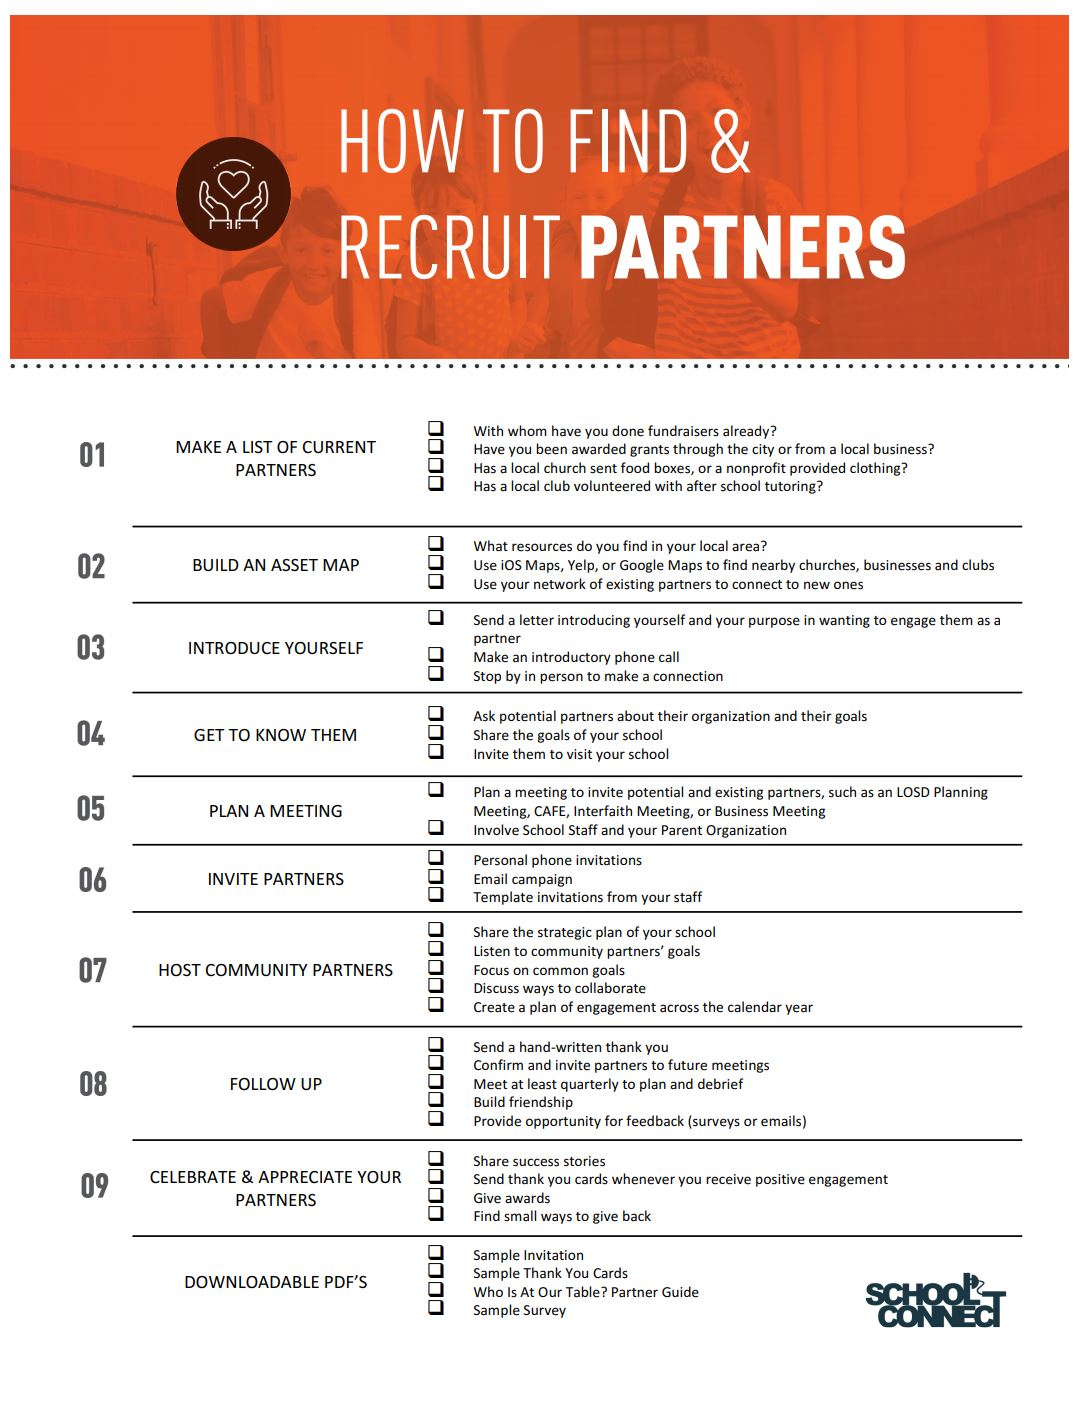 Find & Recruit Partners Preview.JPG